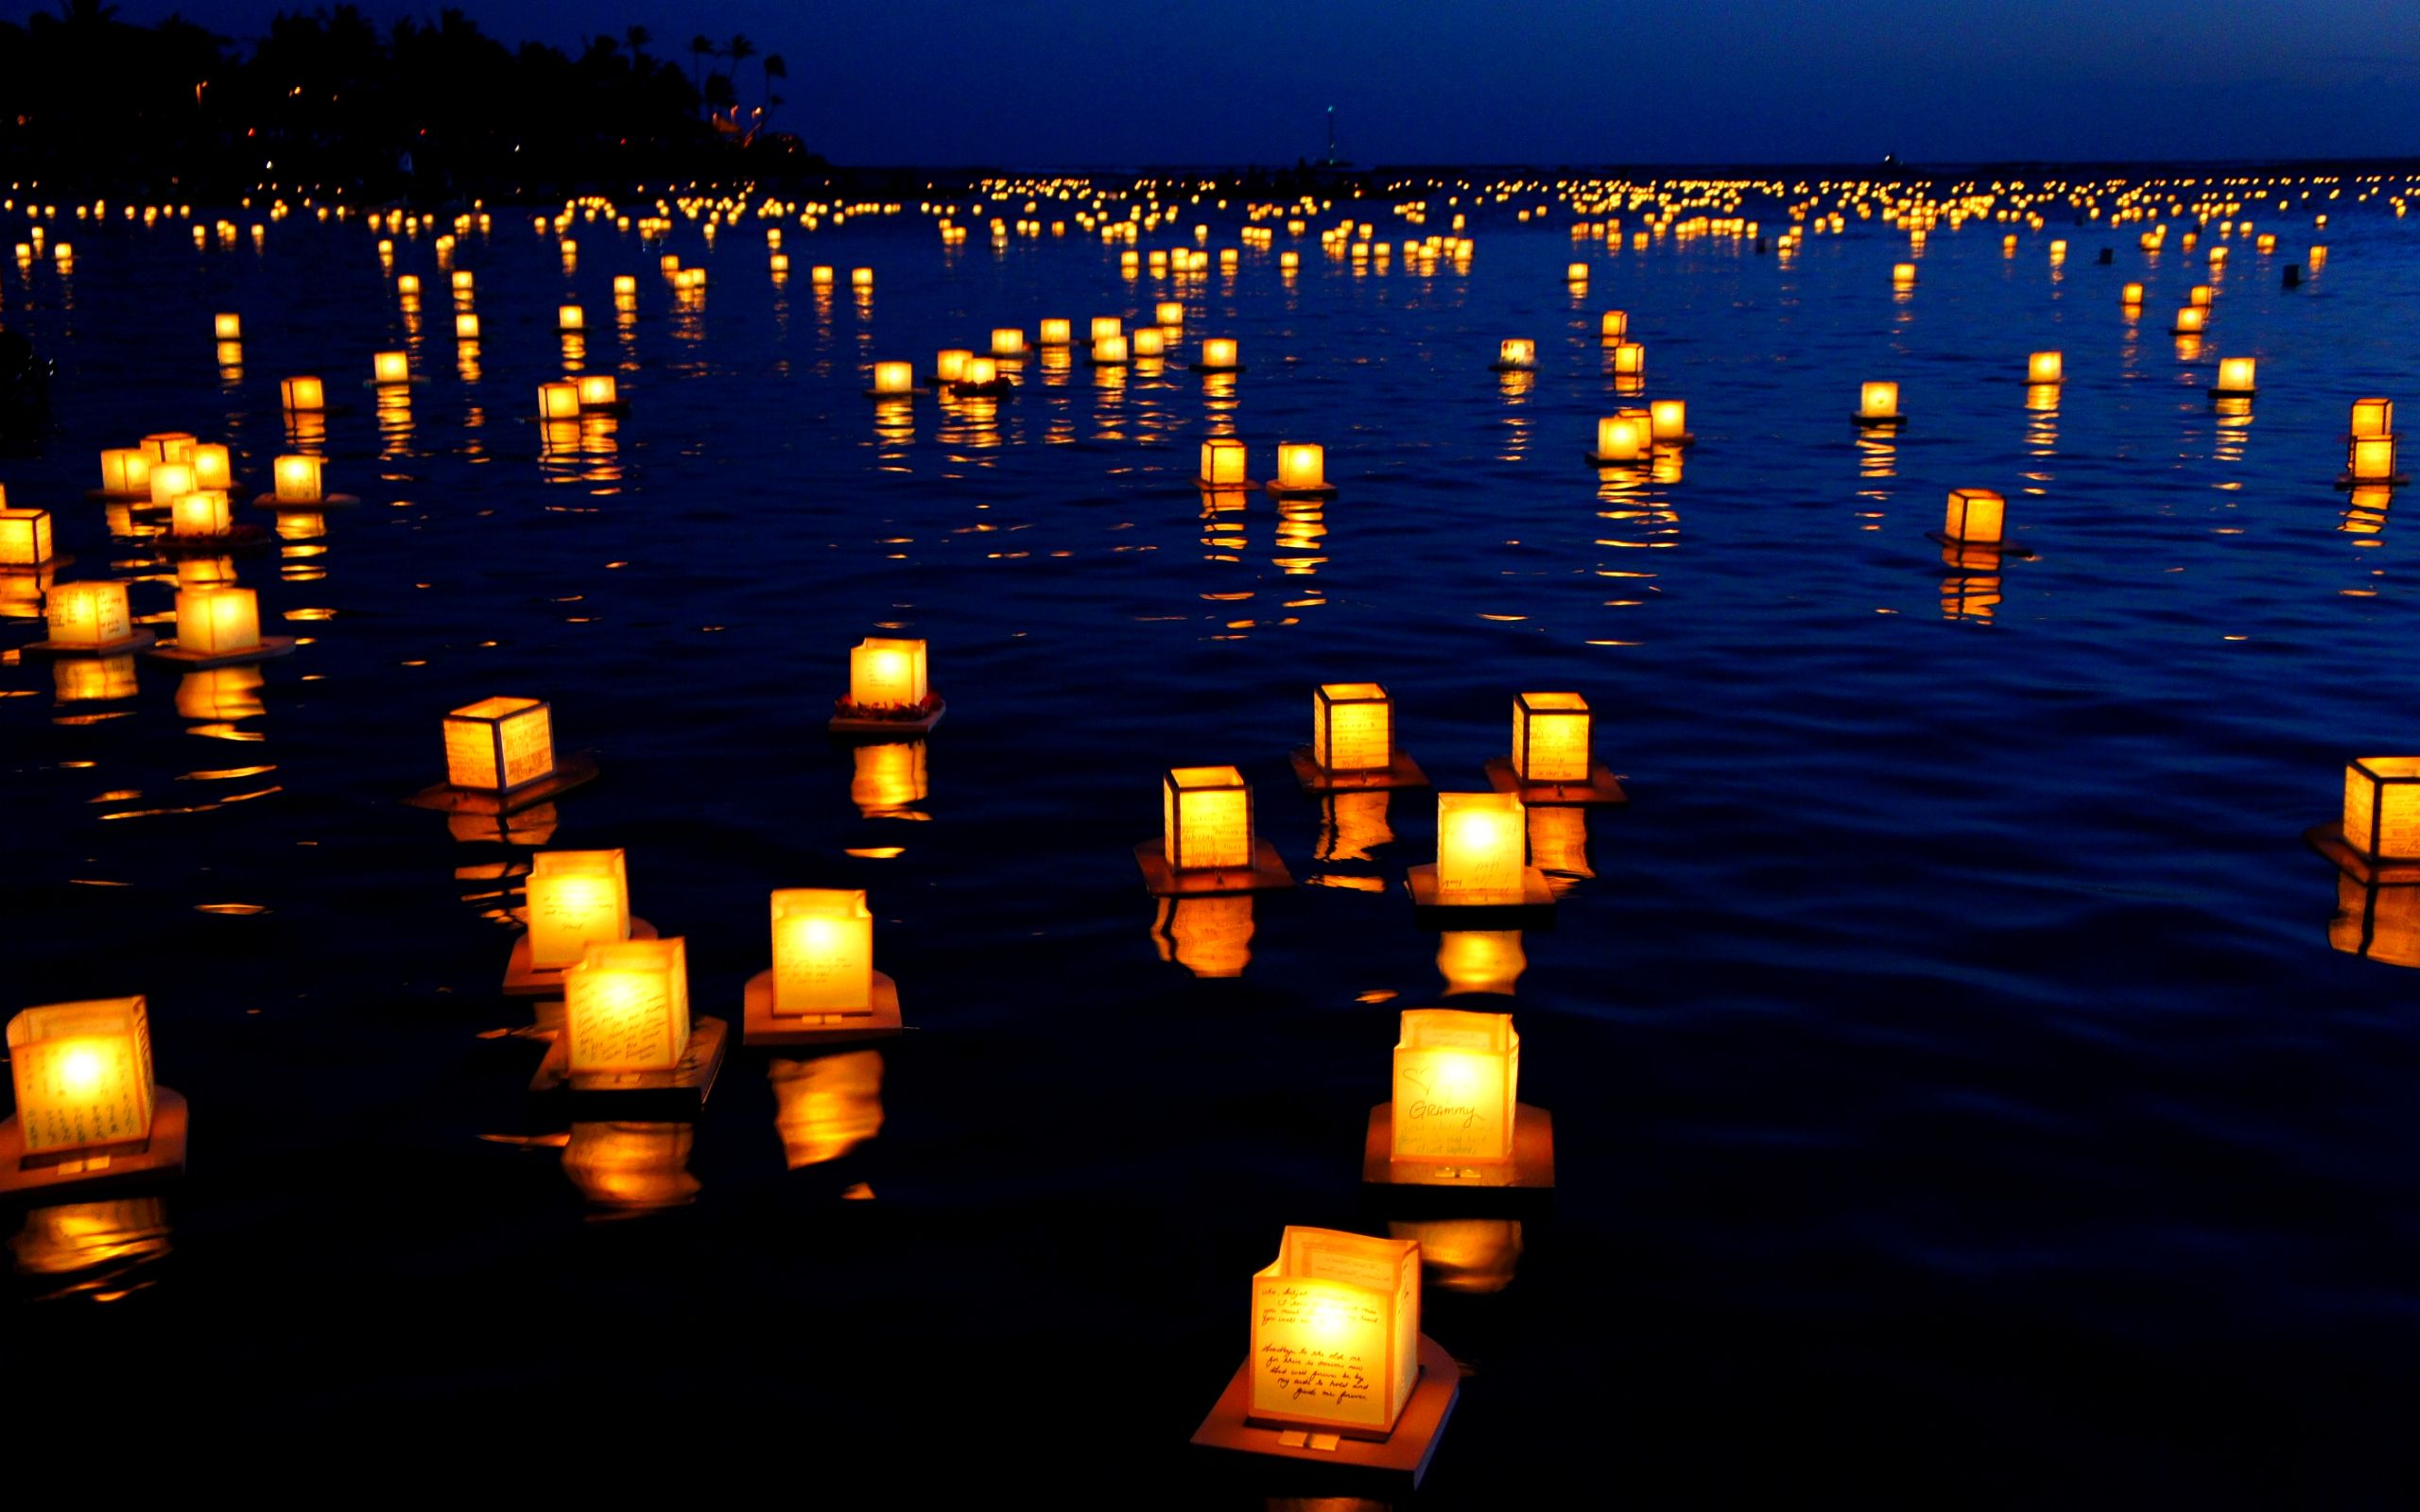 Water candle wallpapers desktop kkk pinterest for How to make a beautiful lantern